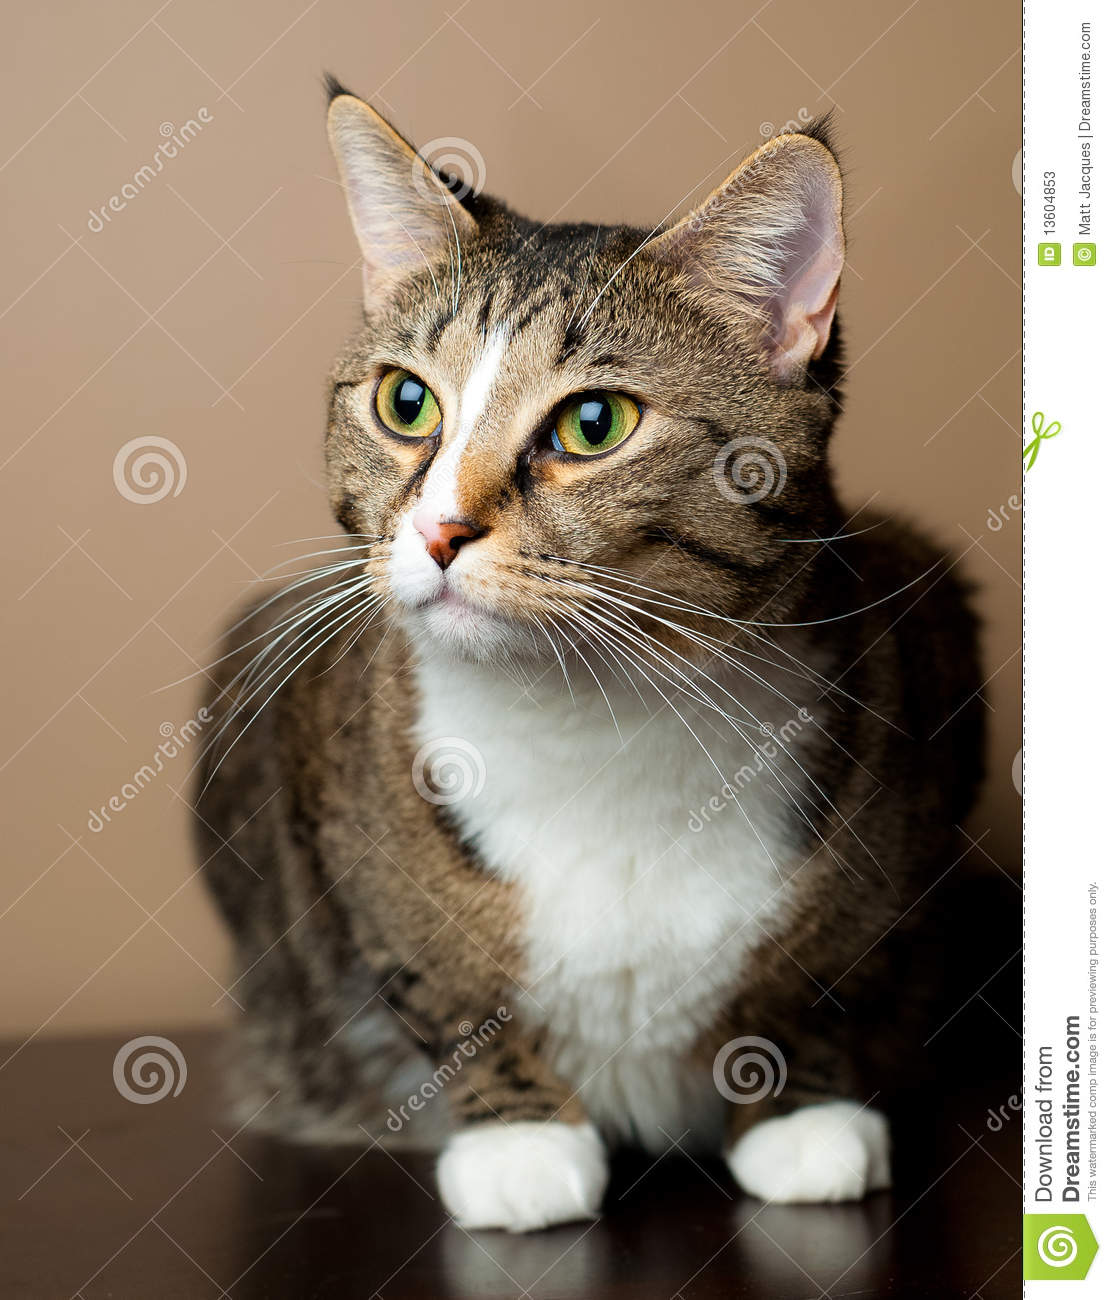 Cute Tabby Cat Sitting And Alert. Stock Image - Image of ... Tabby Cat Sitting Up